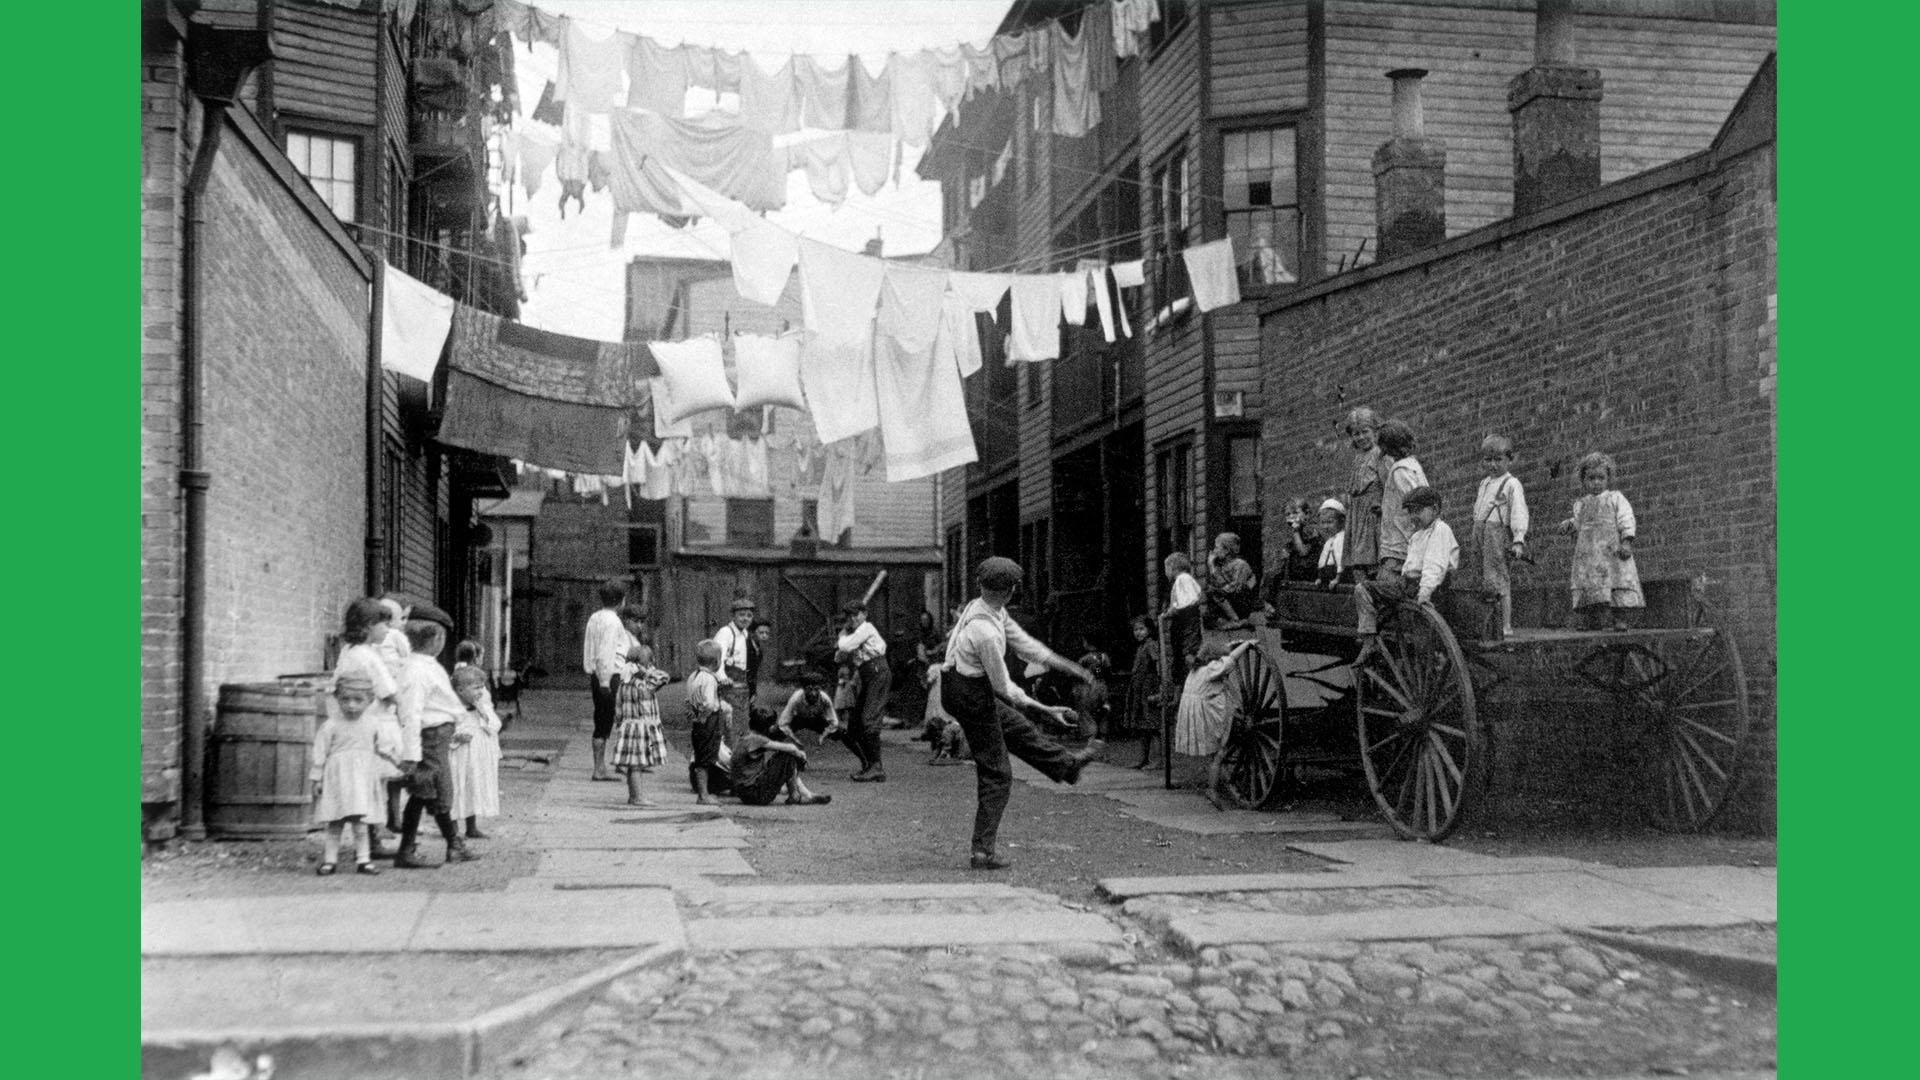 Lewis Hine, Play Ground in Tenement Alley, Boston, 1909